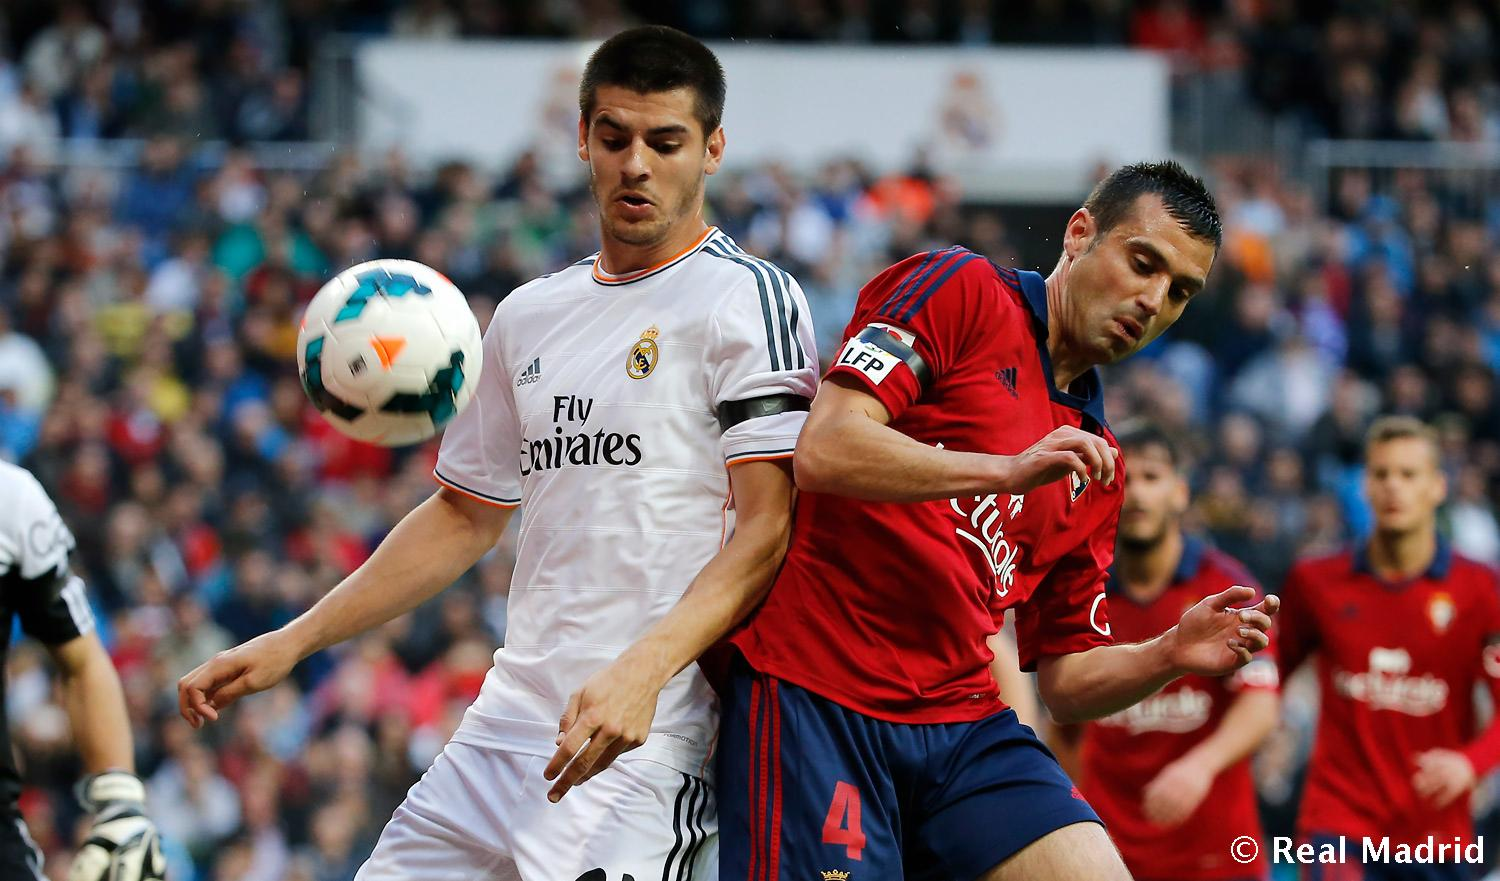 Real Madrid - Real Madrid - Osasuna - 26-04-2014